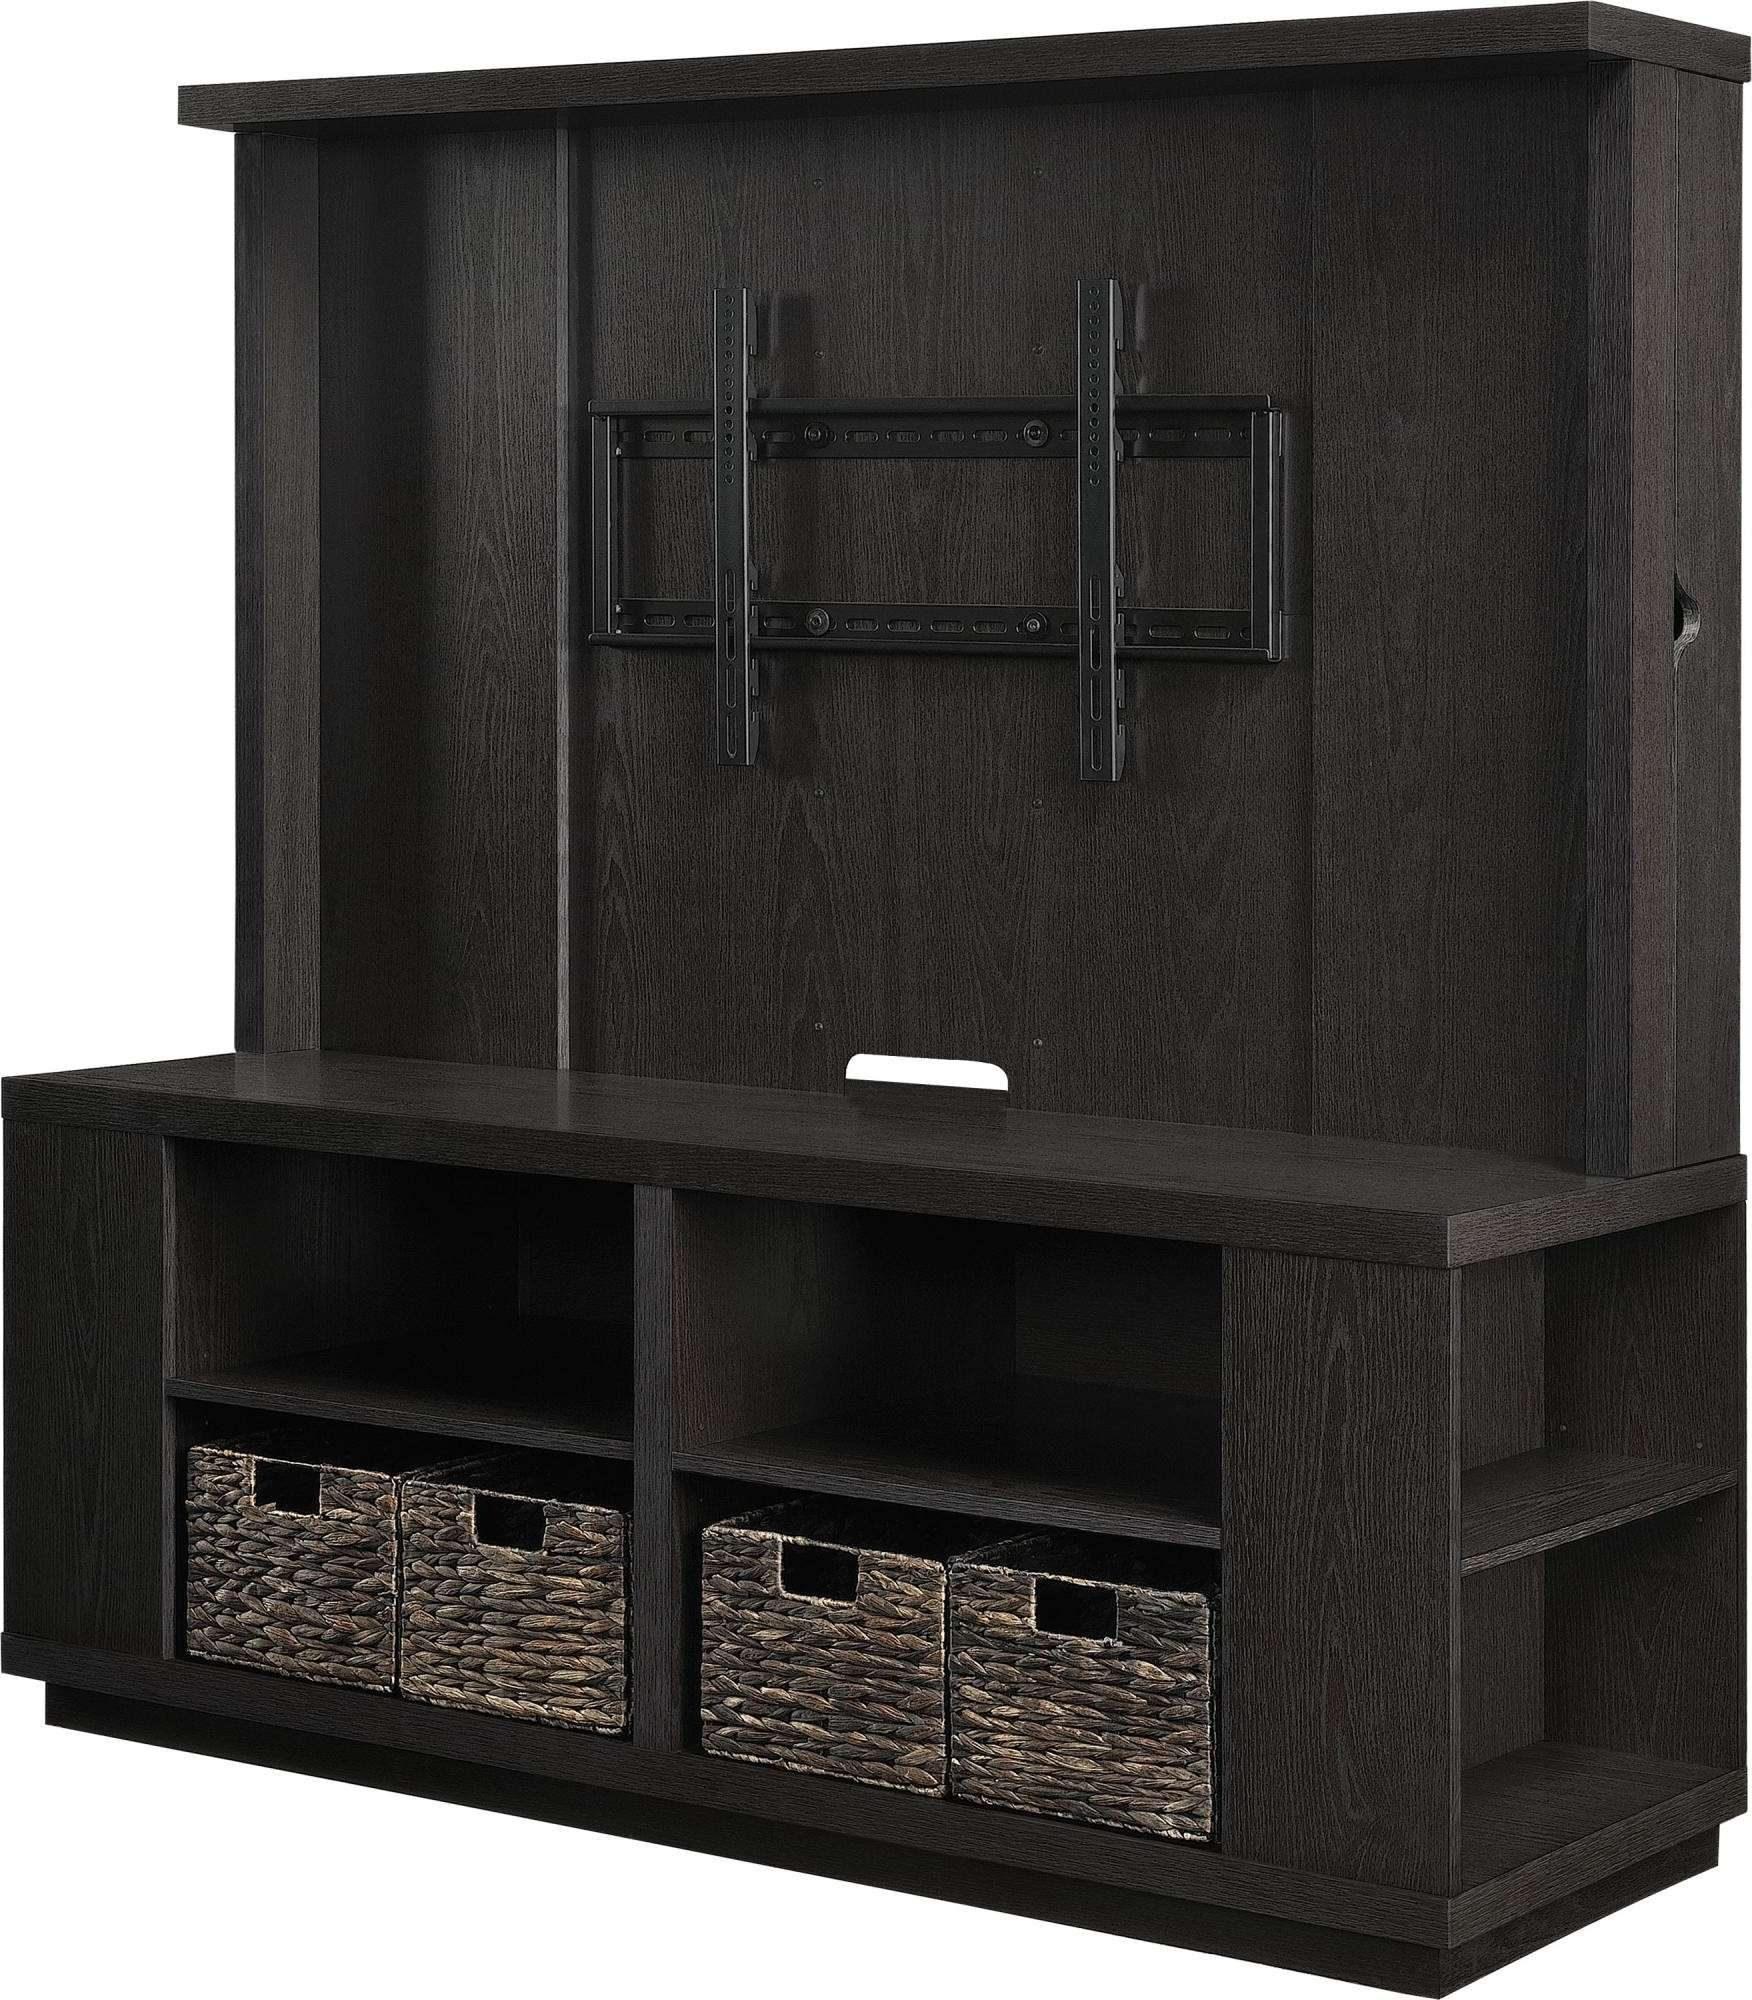 "Free Ship Furnishings | 60"" Flat Panel Tv Stand Dylan Hec With Inside Tv Stands With Baskets (View 5 of 15)"